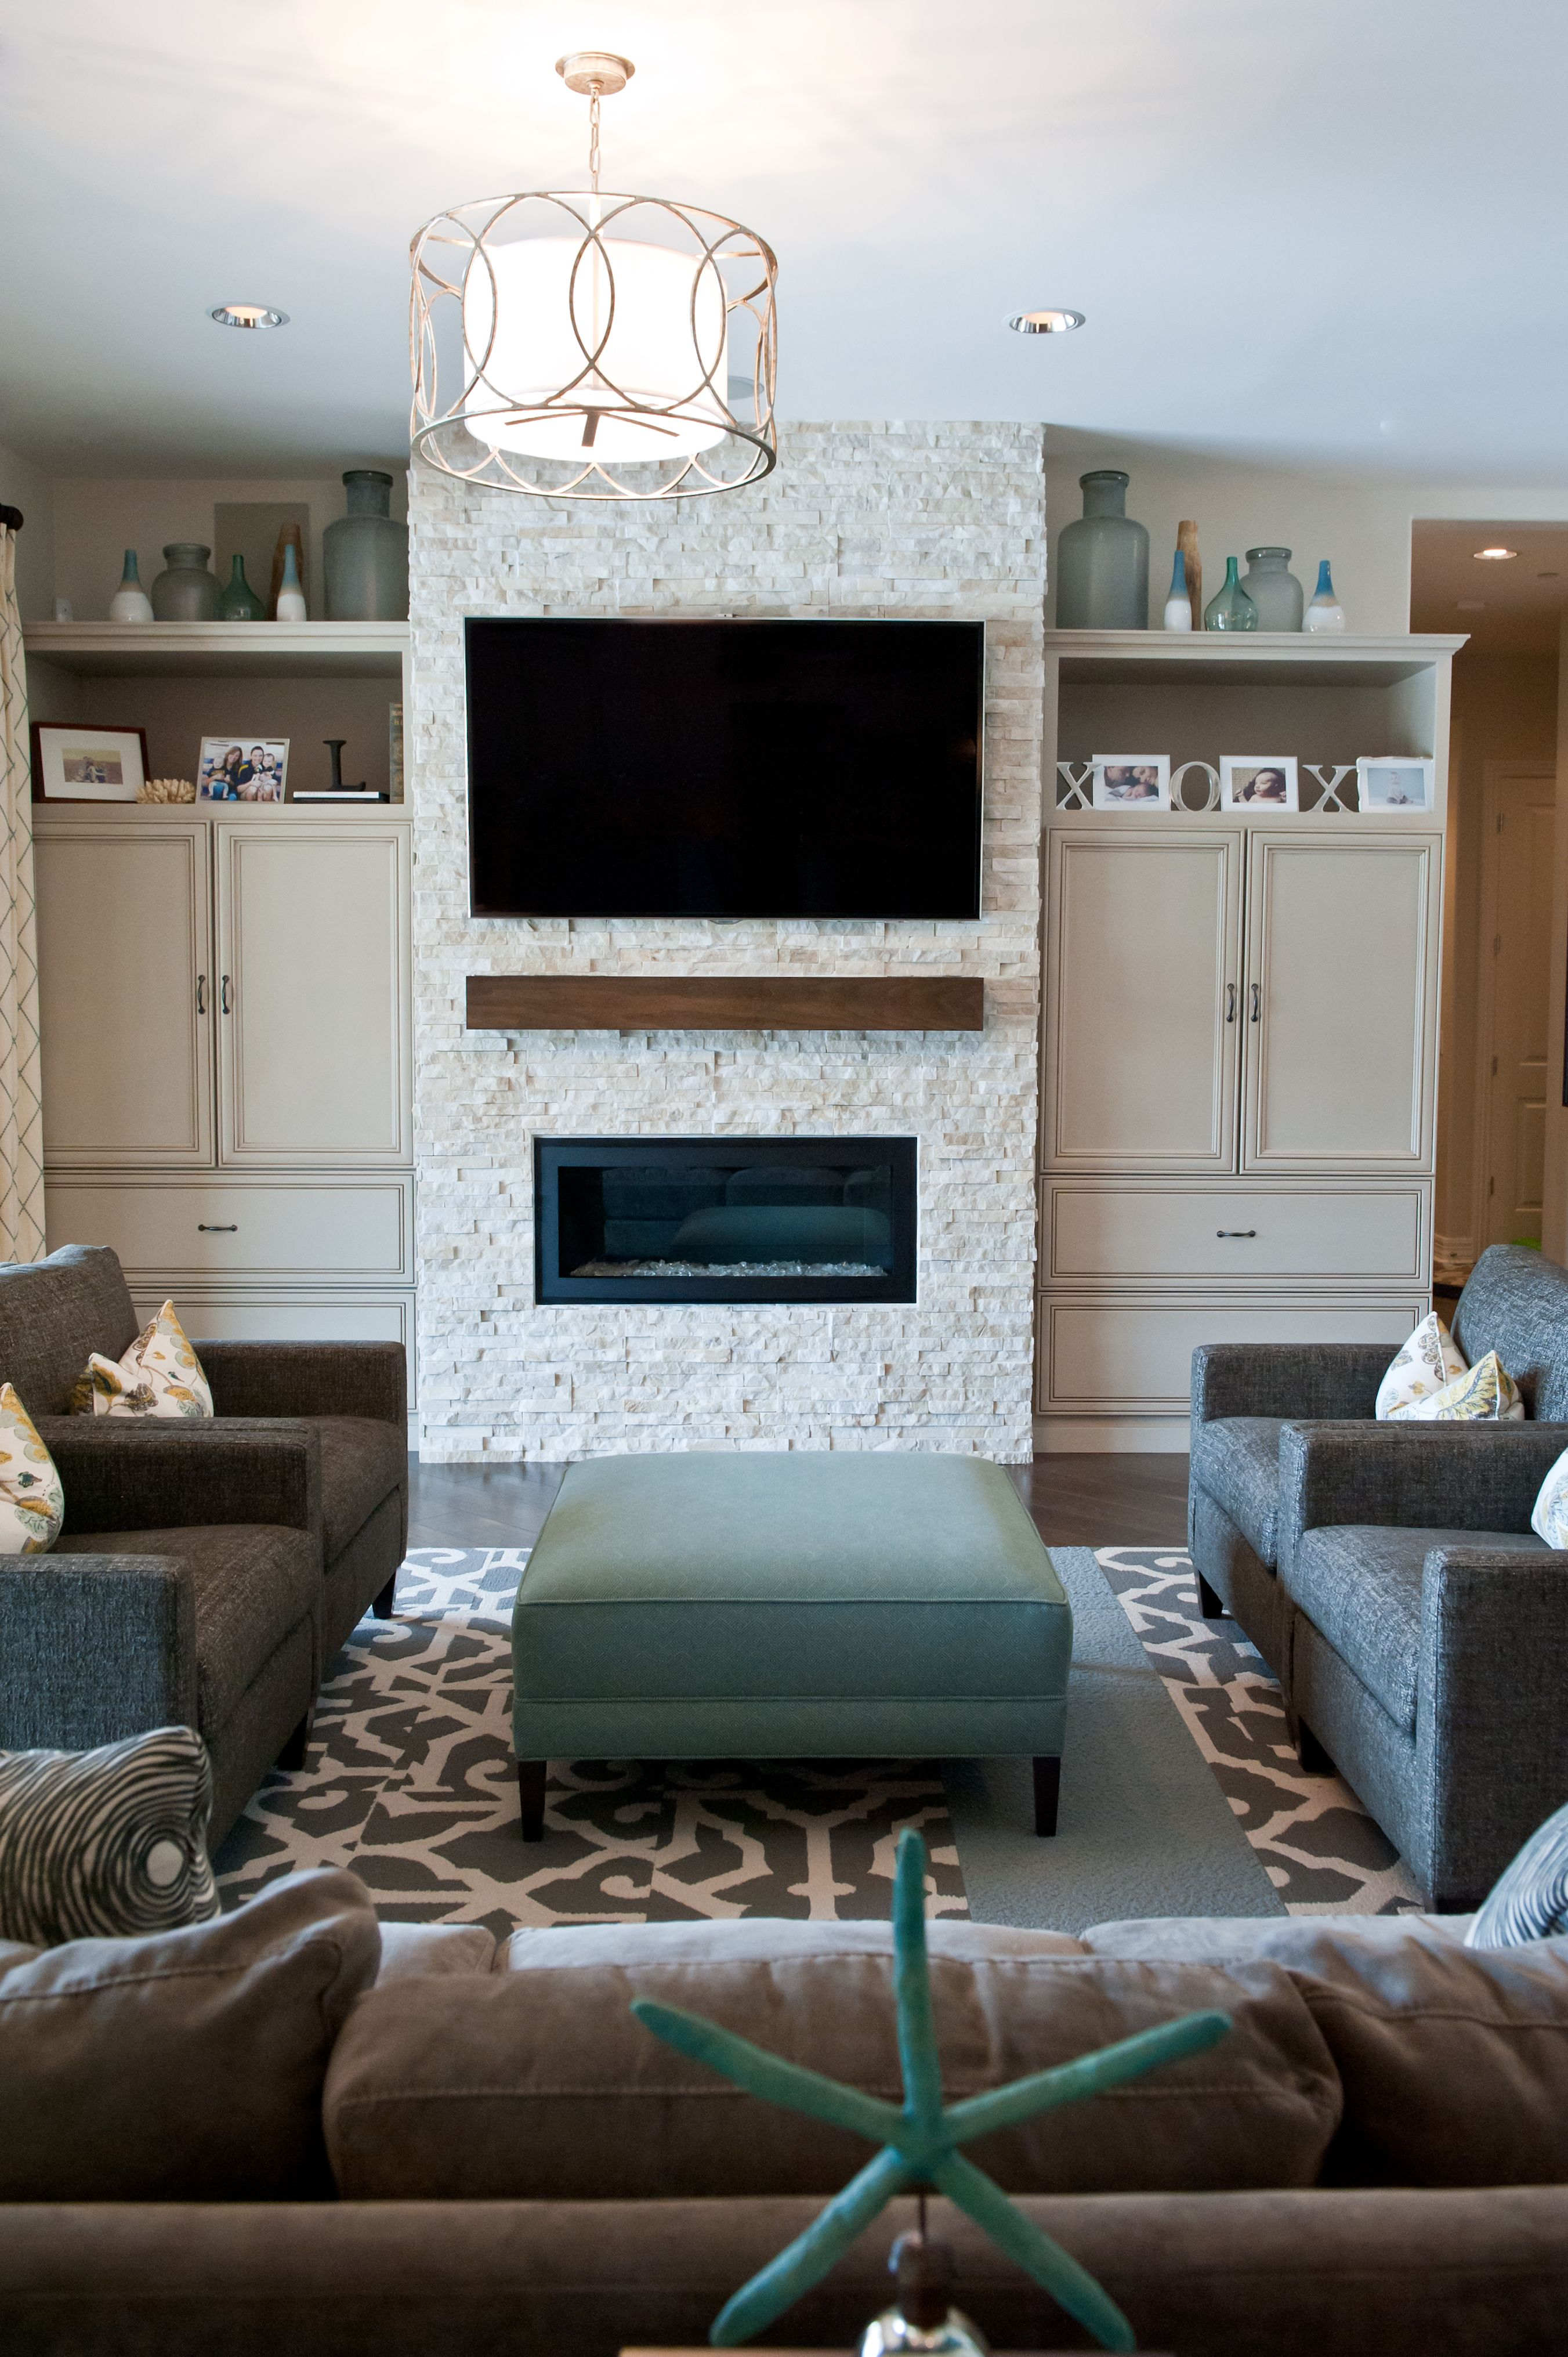 Custom Stone Fireplace with Built In Shelving Units Rustic Wood